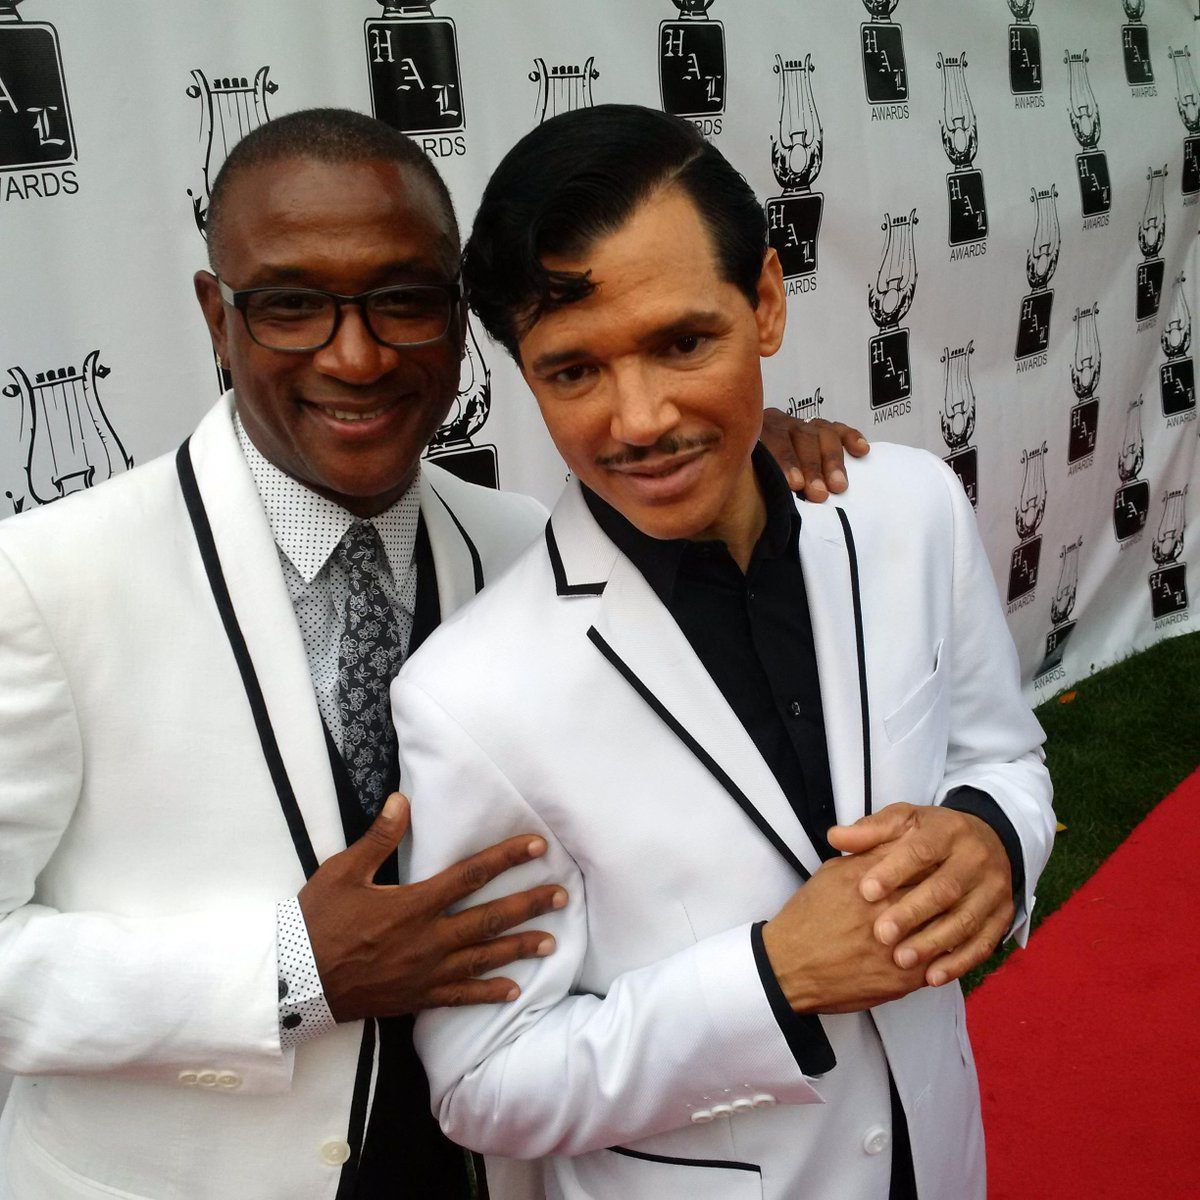 Privilege to participate in Heroes & Legends Awards tonight at Bev Hills Hotel with longtime friends like @ElDeBarge http://t.co/V4g78nMq7O